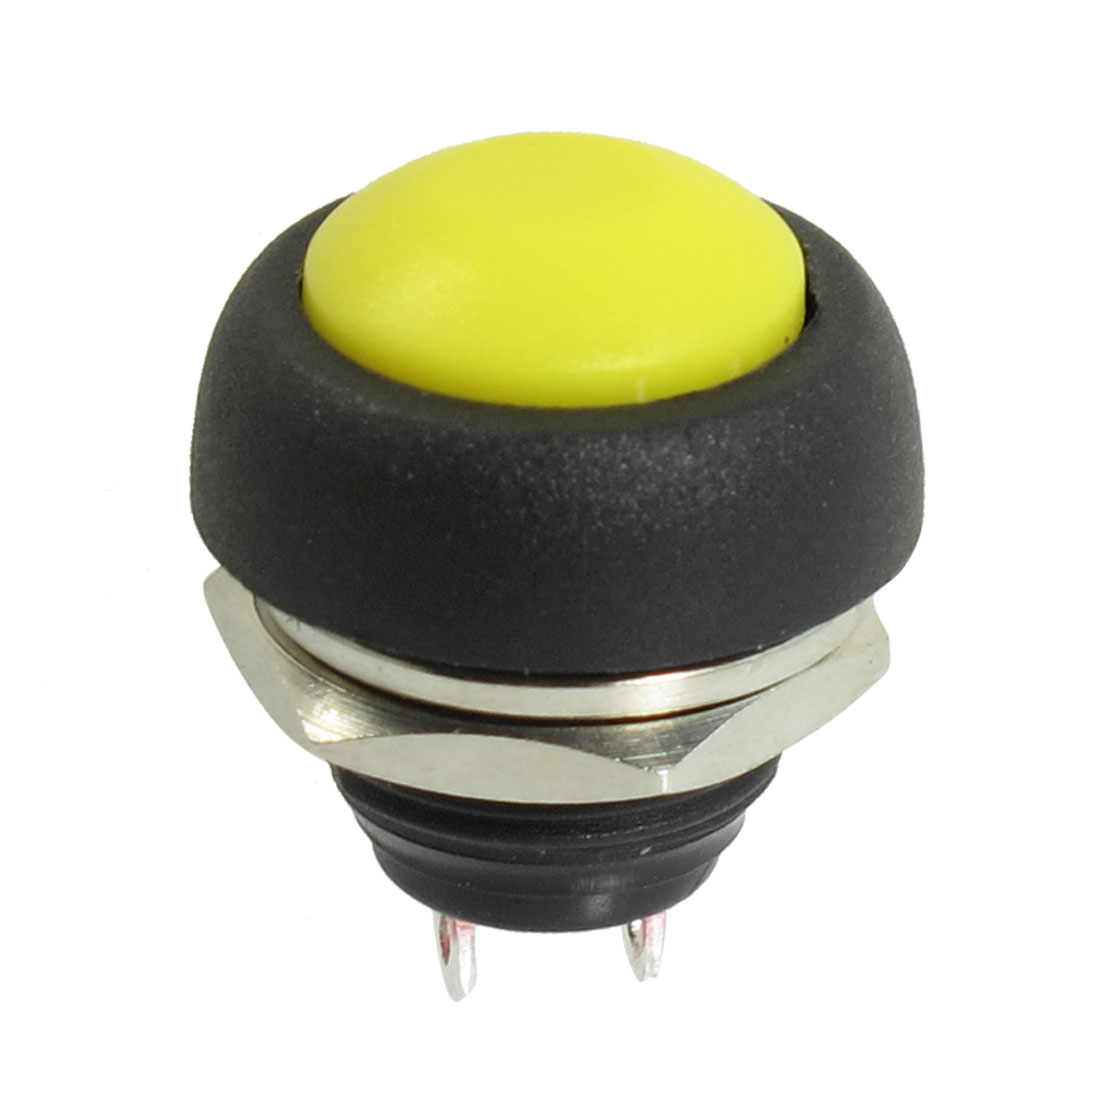 2 Terminals 12mm Threaded SPST Momentary Yellow Pushbutton Switch 250VAC 3A